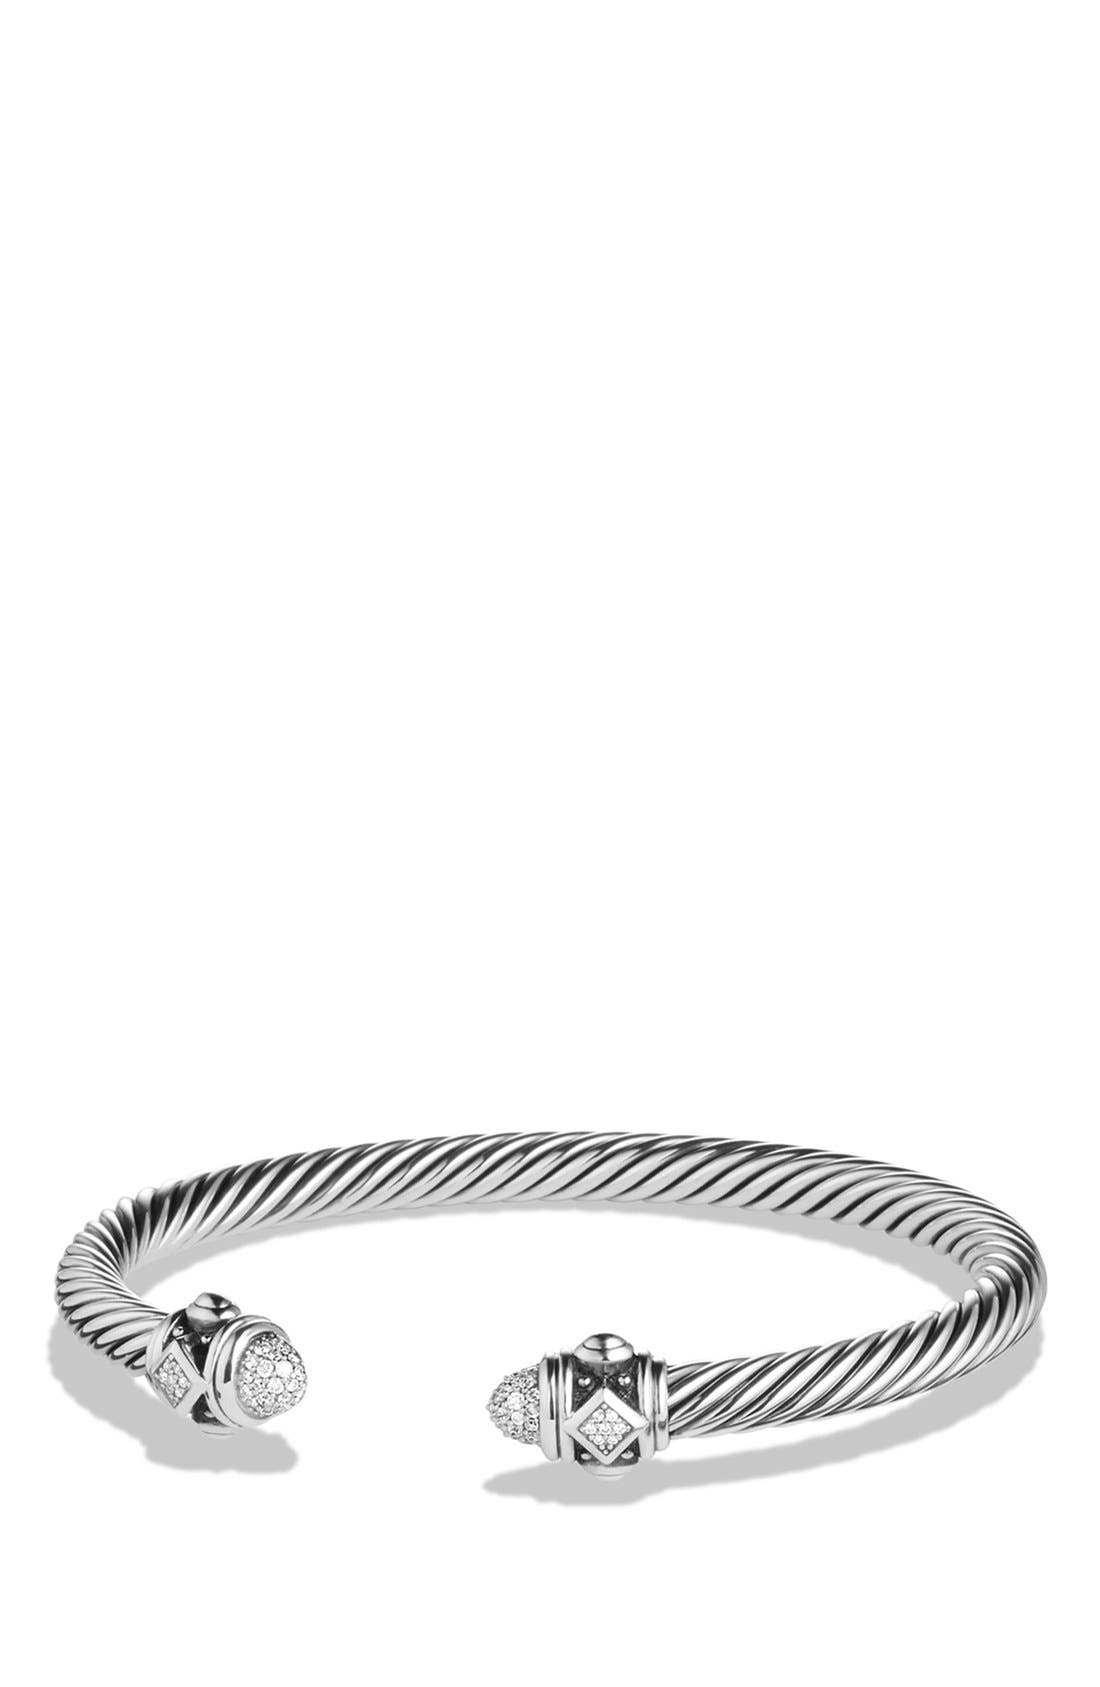 David Yurman 'Renaissance' Bracelet with Diamonds in Silver